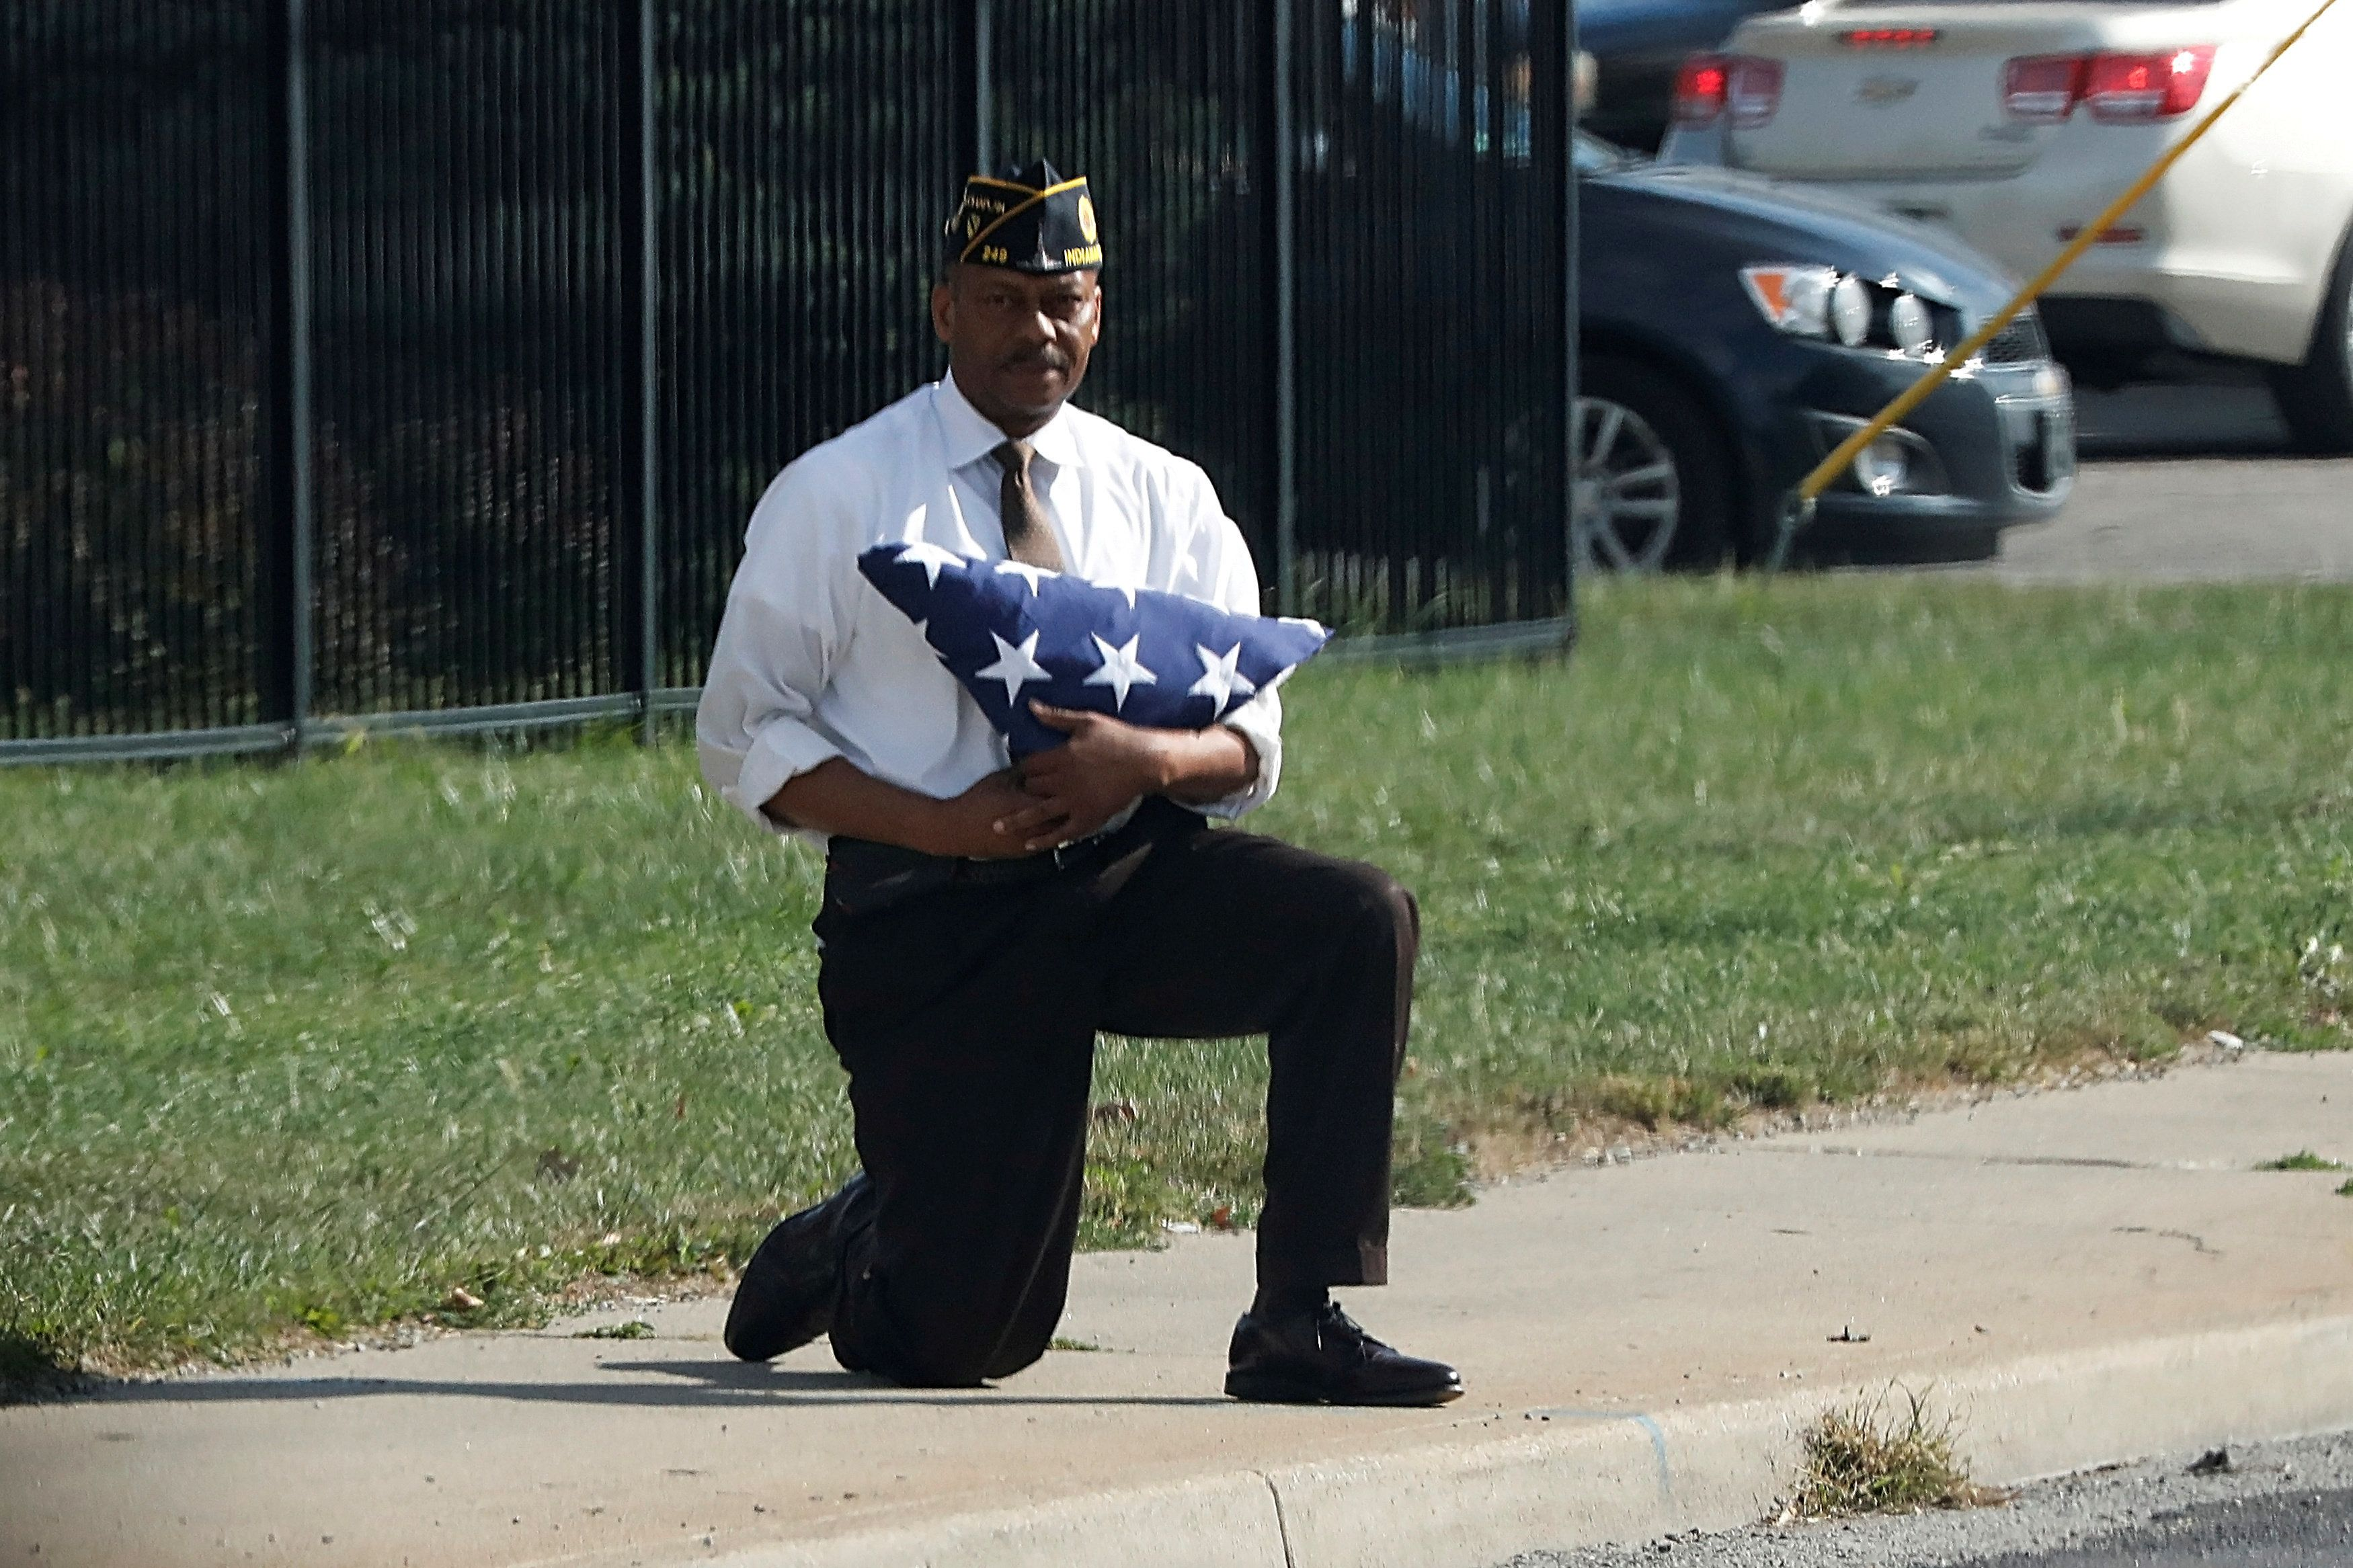 A man kneels with a folded U.S. flag as the motorcade of U.S. President Donald Trump passes him after an event at the state fairgrounds in Indianapolis, Indiana, U.S. September 27, 2017. REUTERS/Jonathan Ernst     TPX IMAGES OF THE DAY